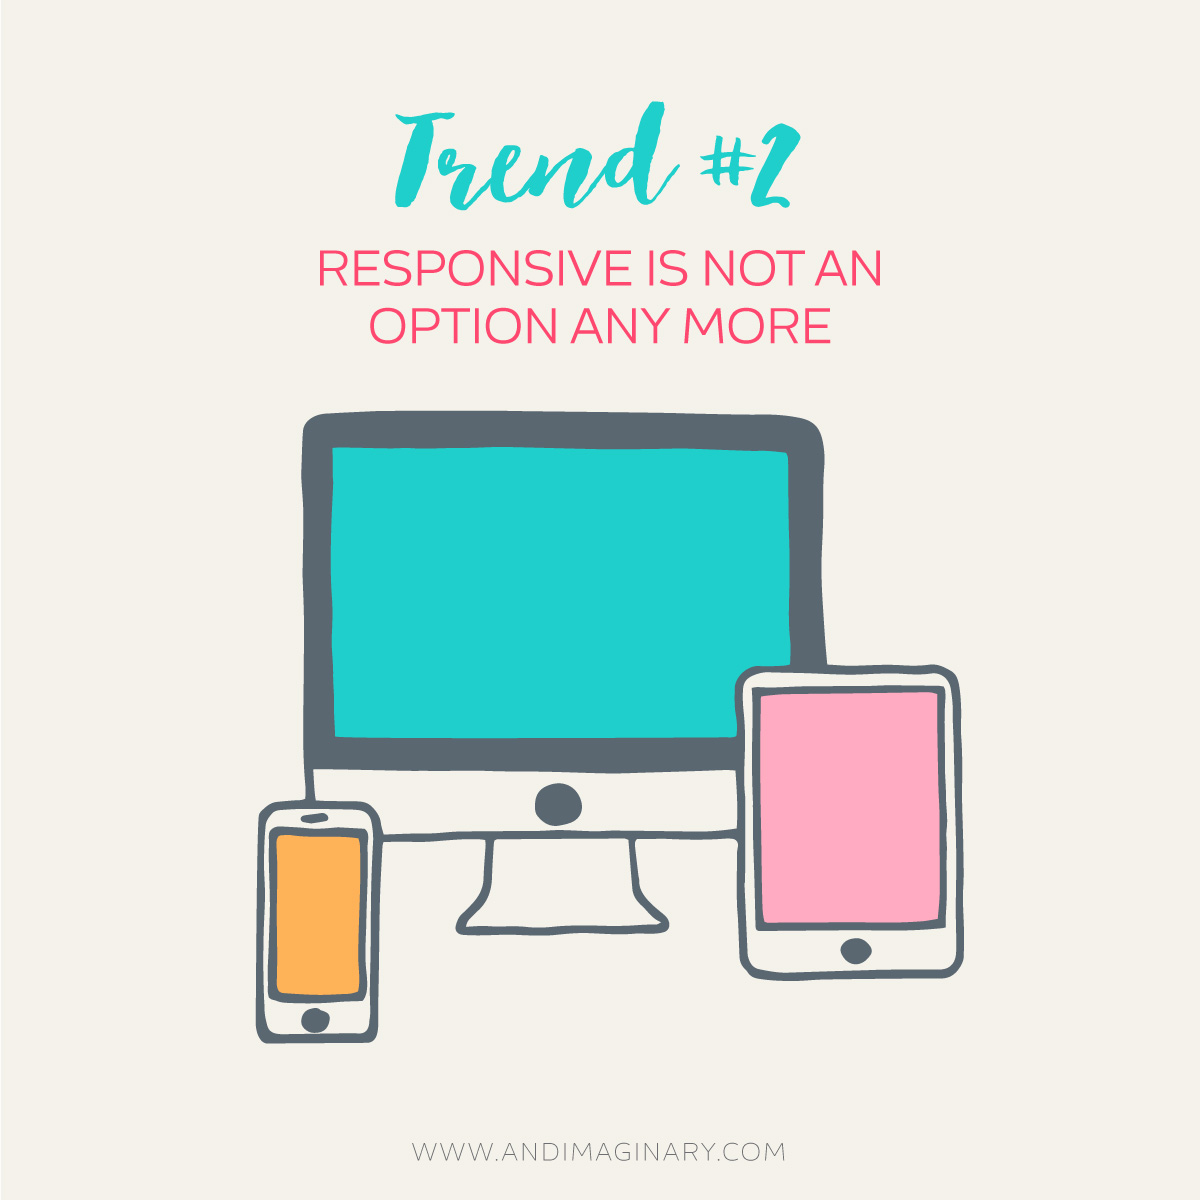 Branding trends 2016 - Responsive Design - Andimaginary Design